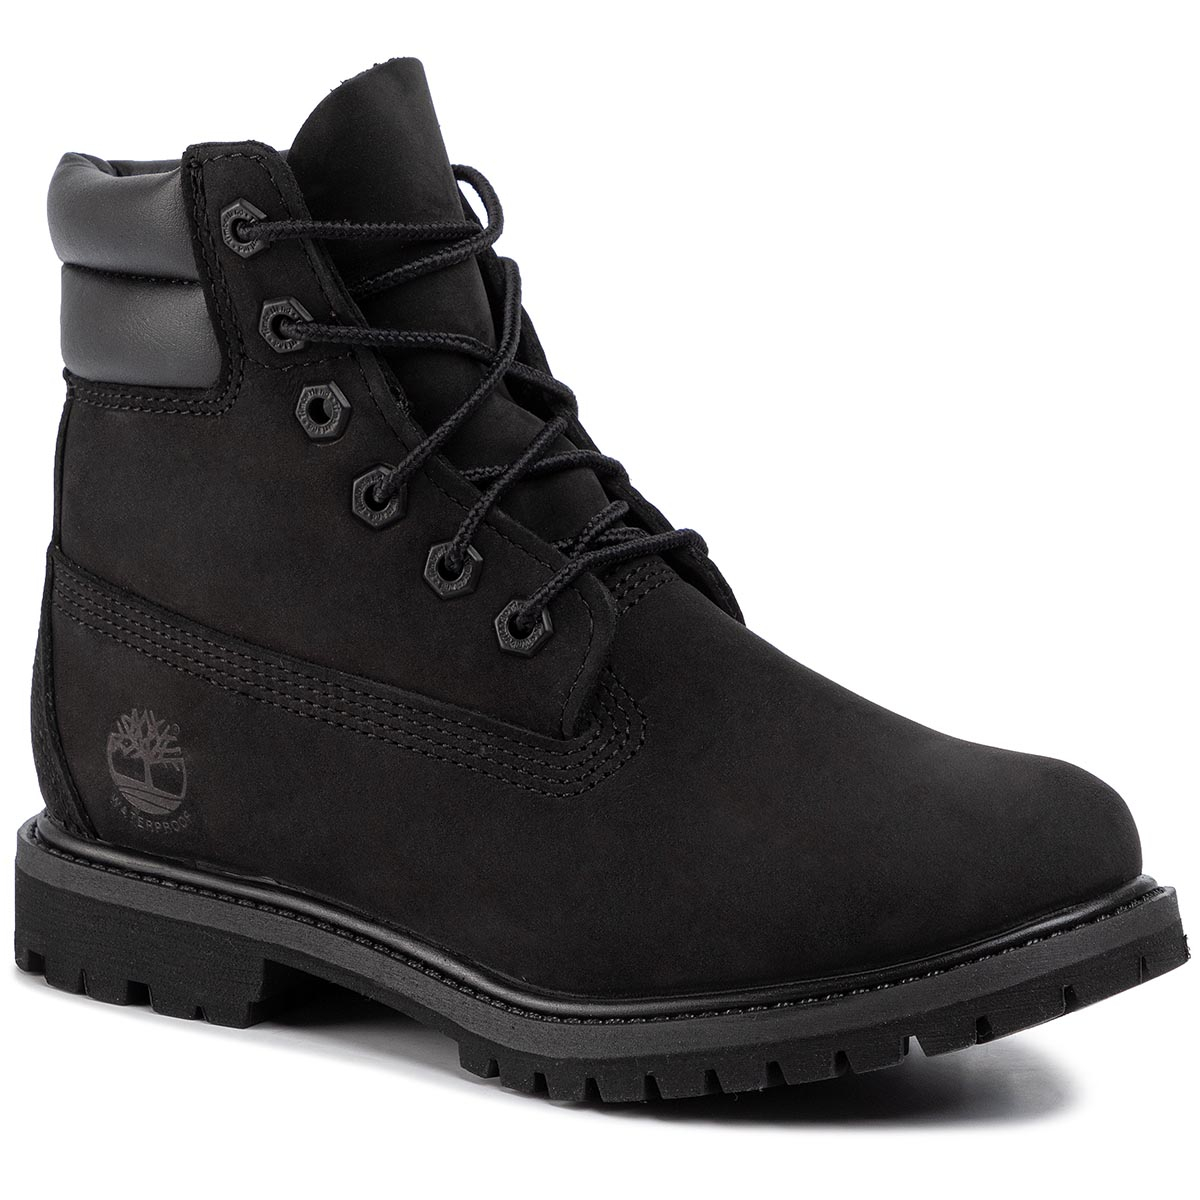 Trappers Timberland - Waterville 6 In Waterproof Boot Tb0a15qy0011 Black Nubuck imagine epantofi.ro